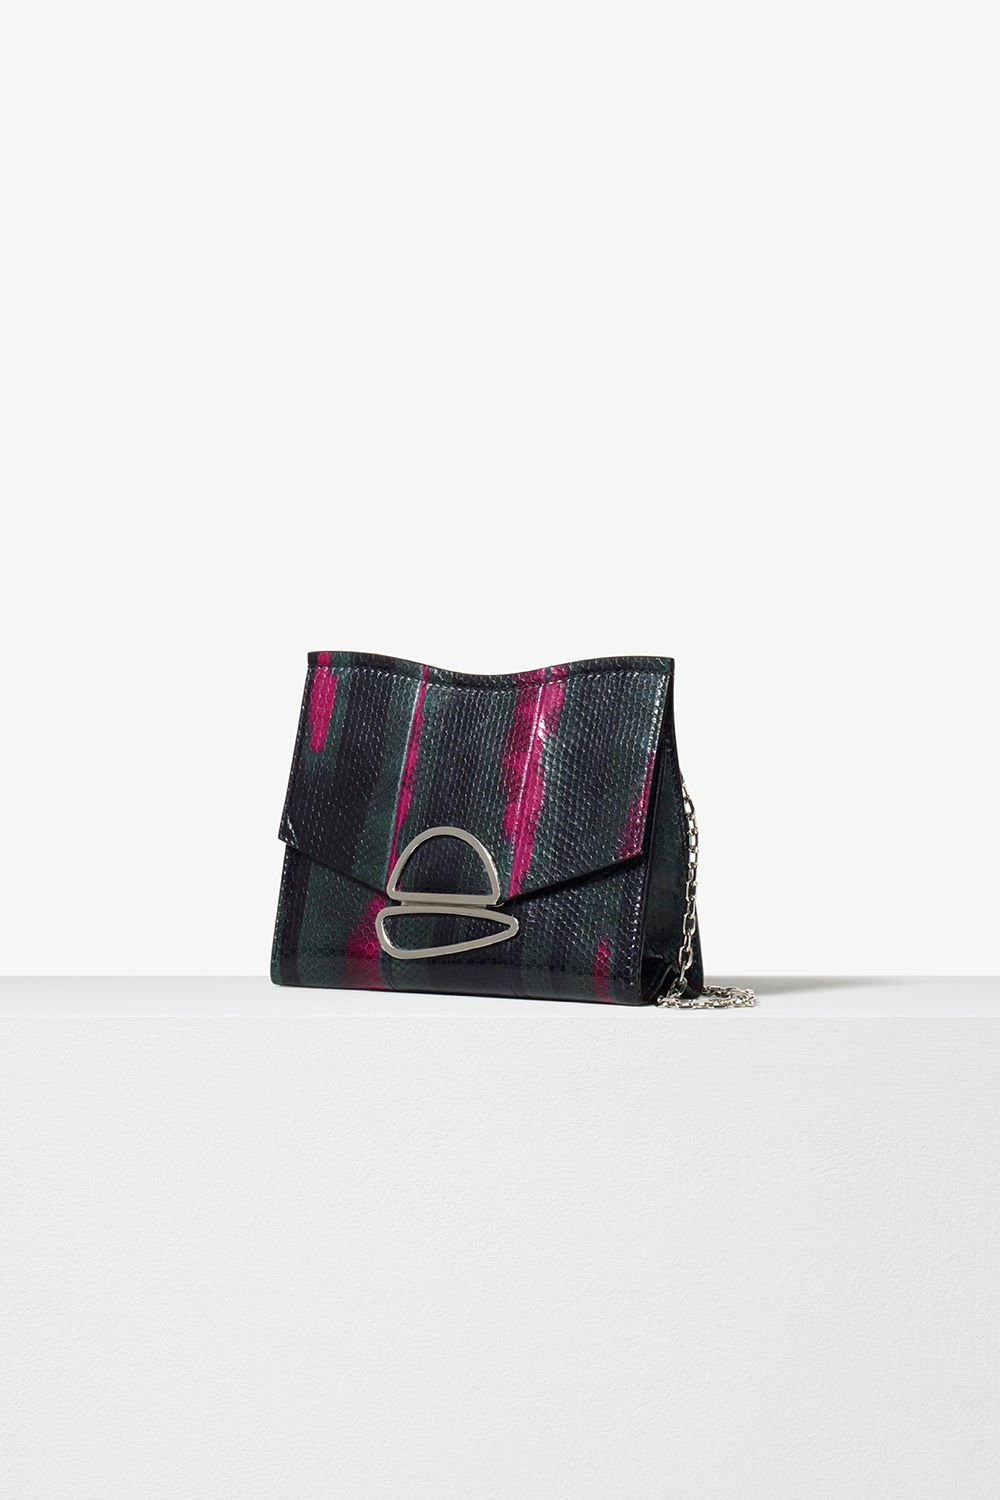 proenza schouler pre fall 2017 juniper printed exotic small chain curl clutch